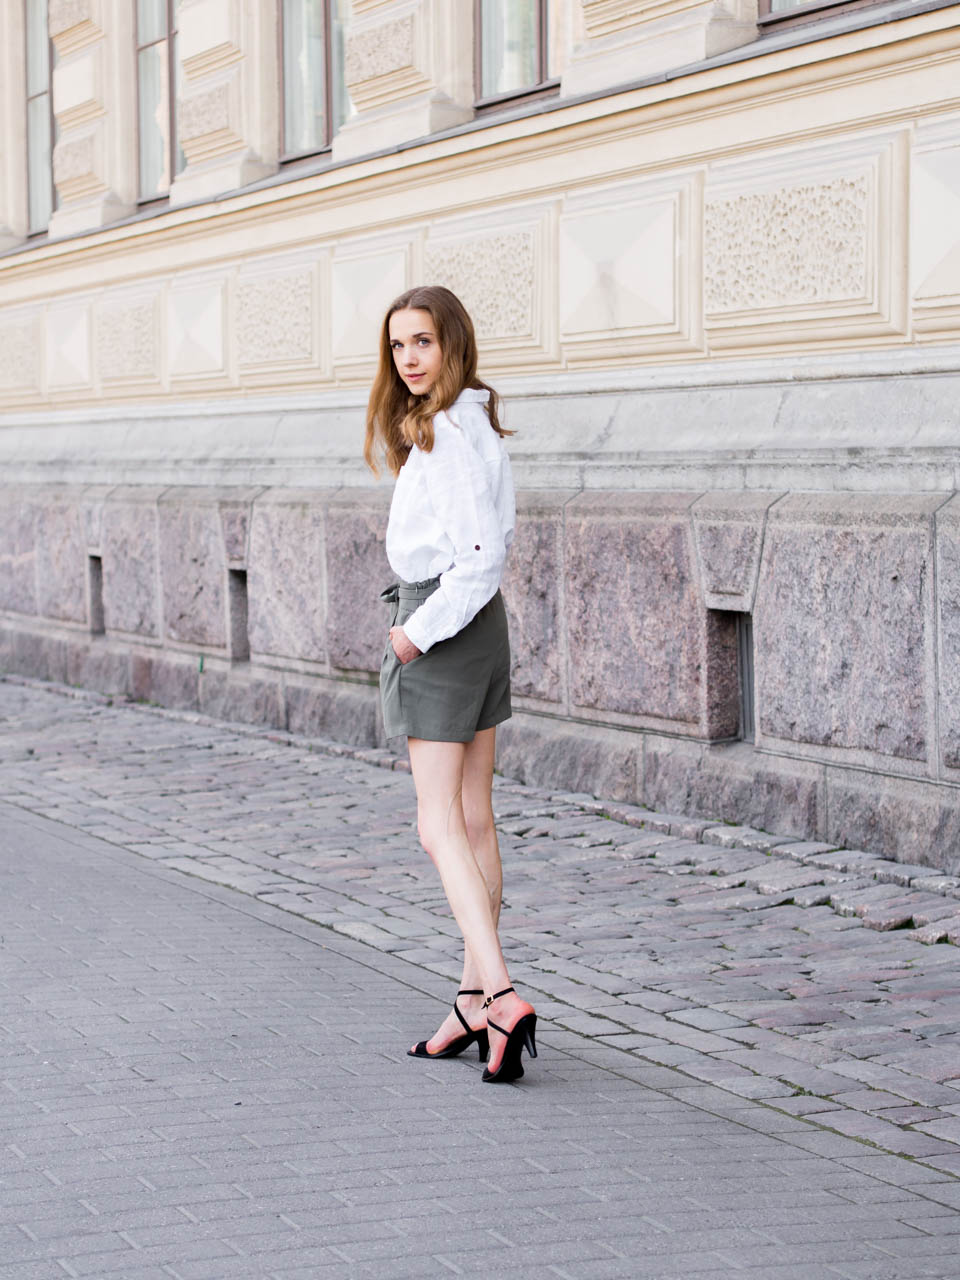 fashion-trends-summer-2019-style-blogger-outfit-inspiration